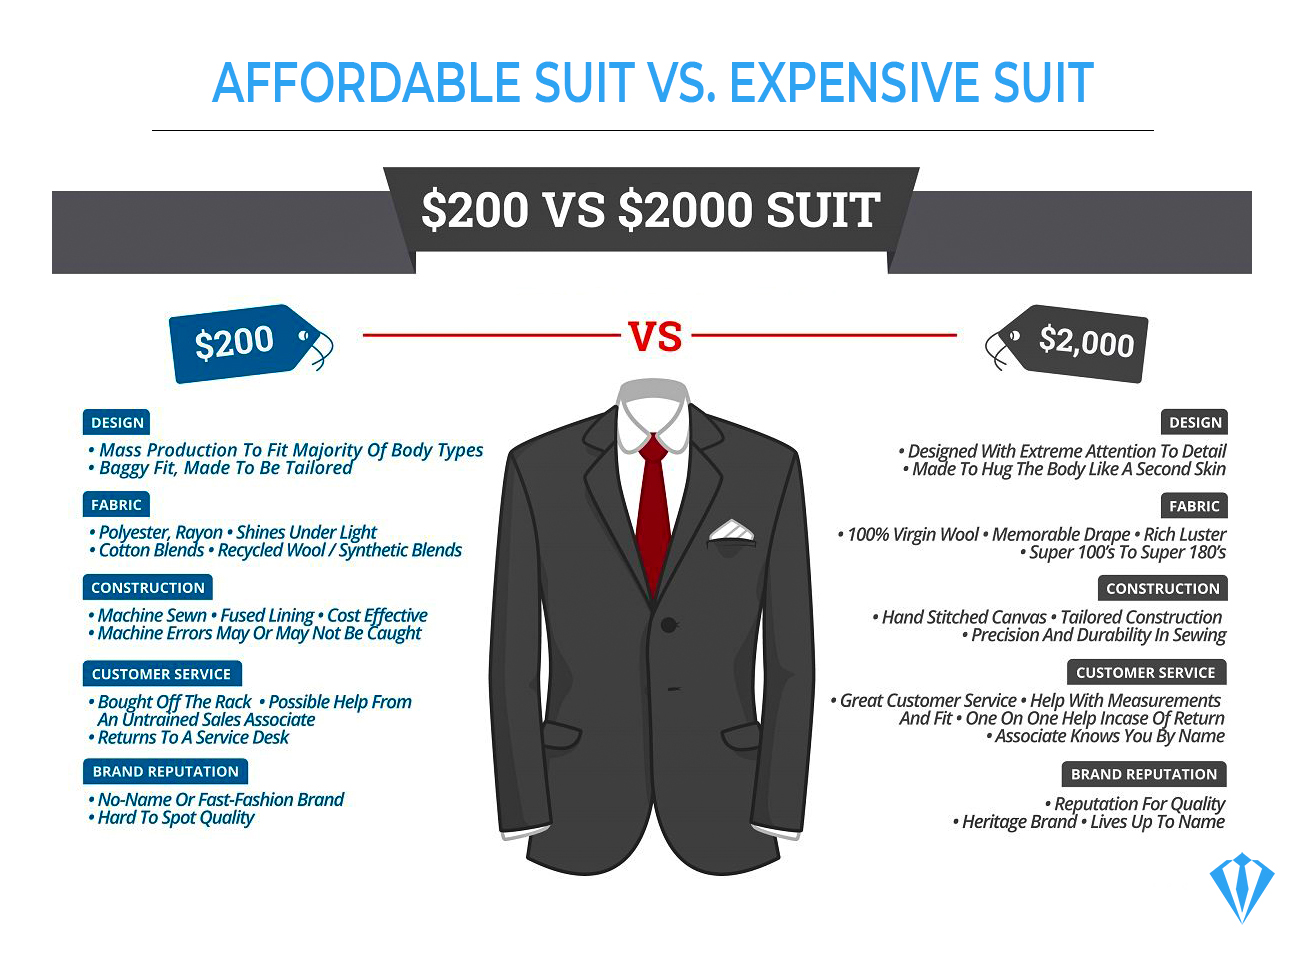 An affordable suit vs. an expensive suit